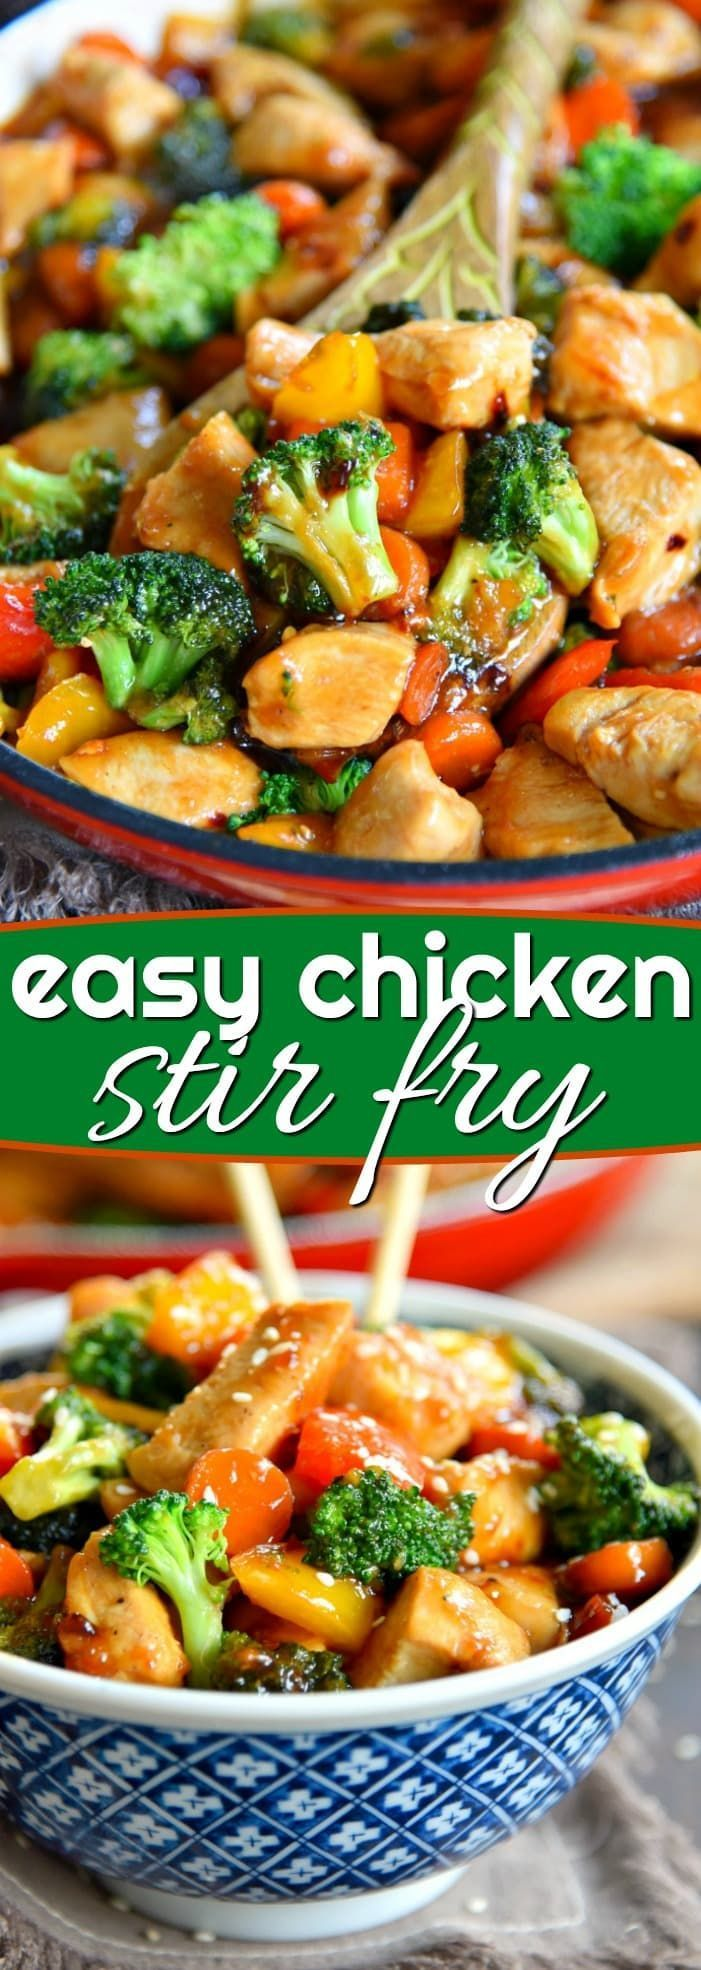 This easy Chicken Stir Fry recipe is loaded with fresh veggies and the most del…